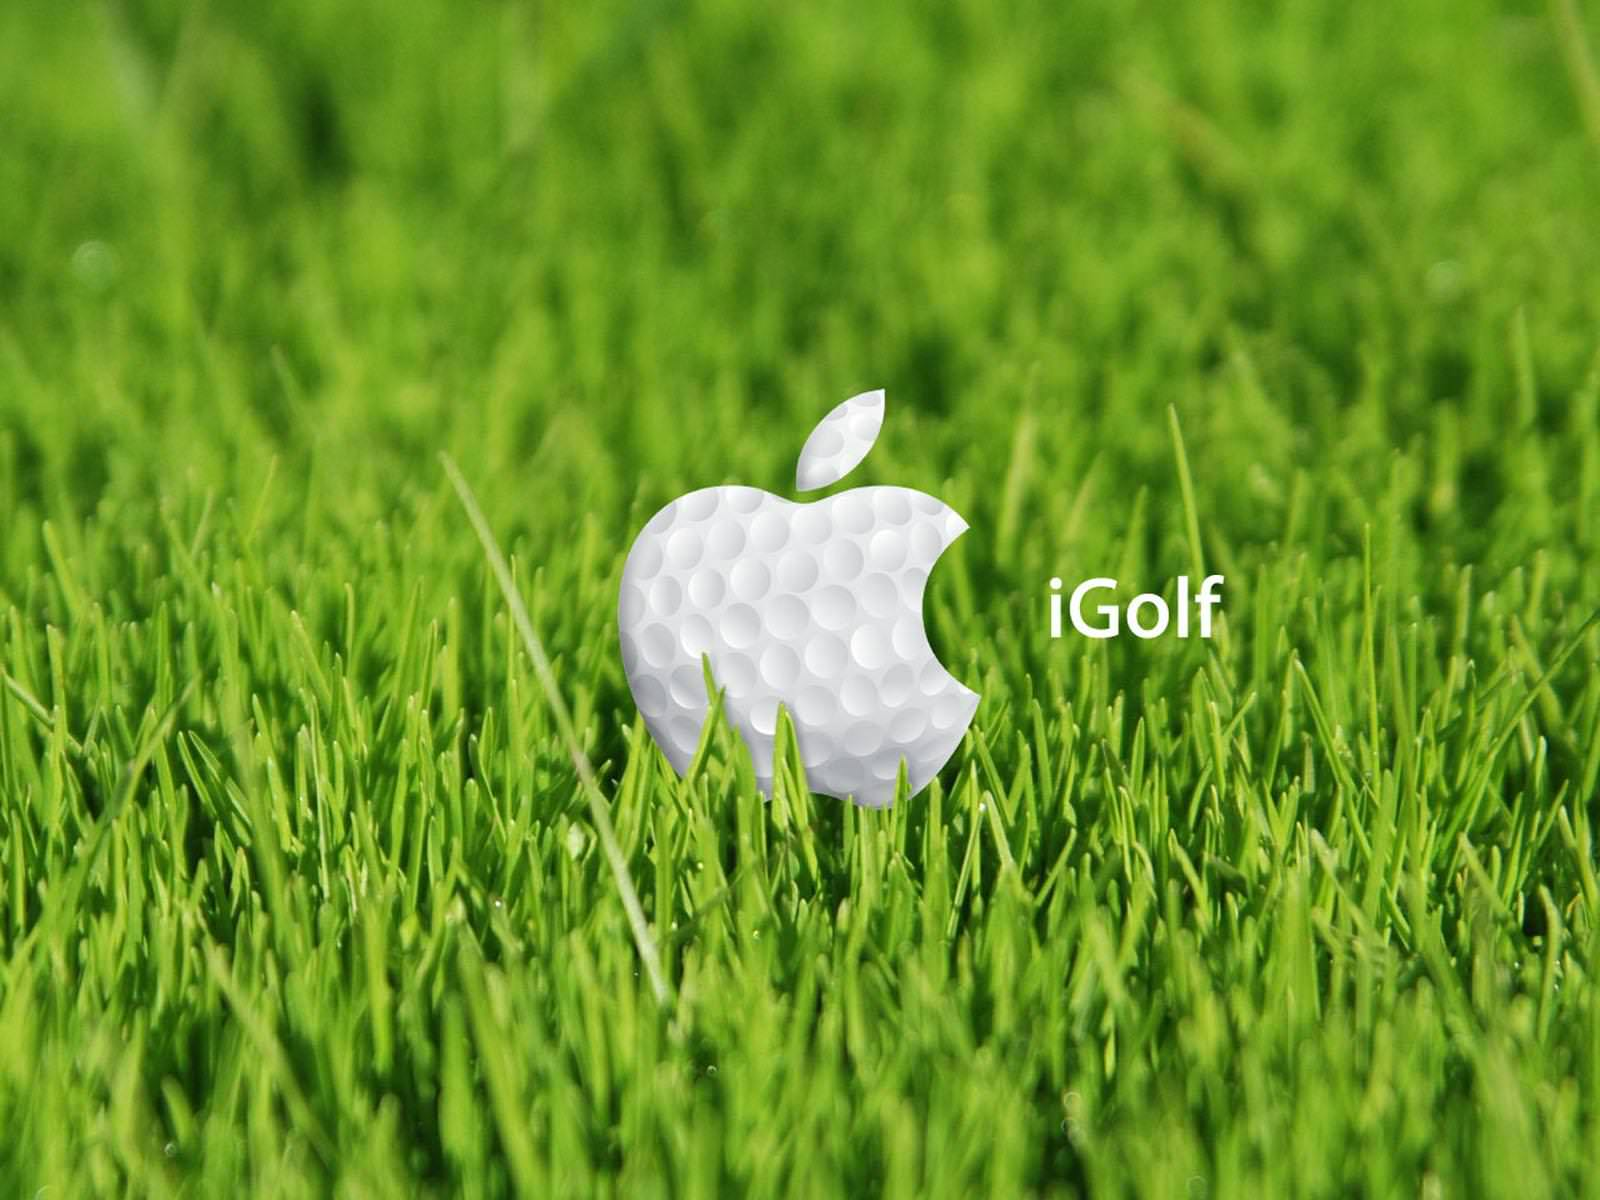 coll igolf ball with green grass wallpaper